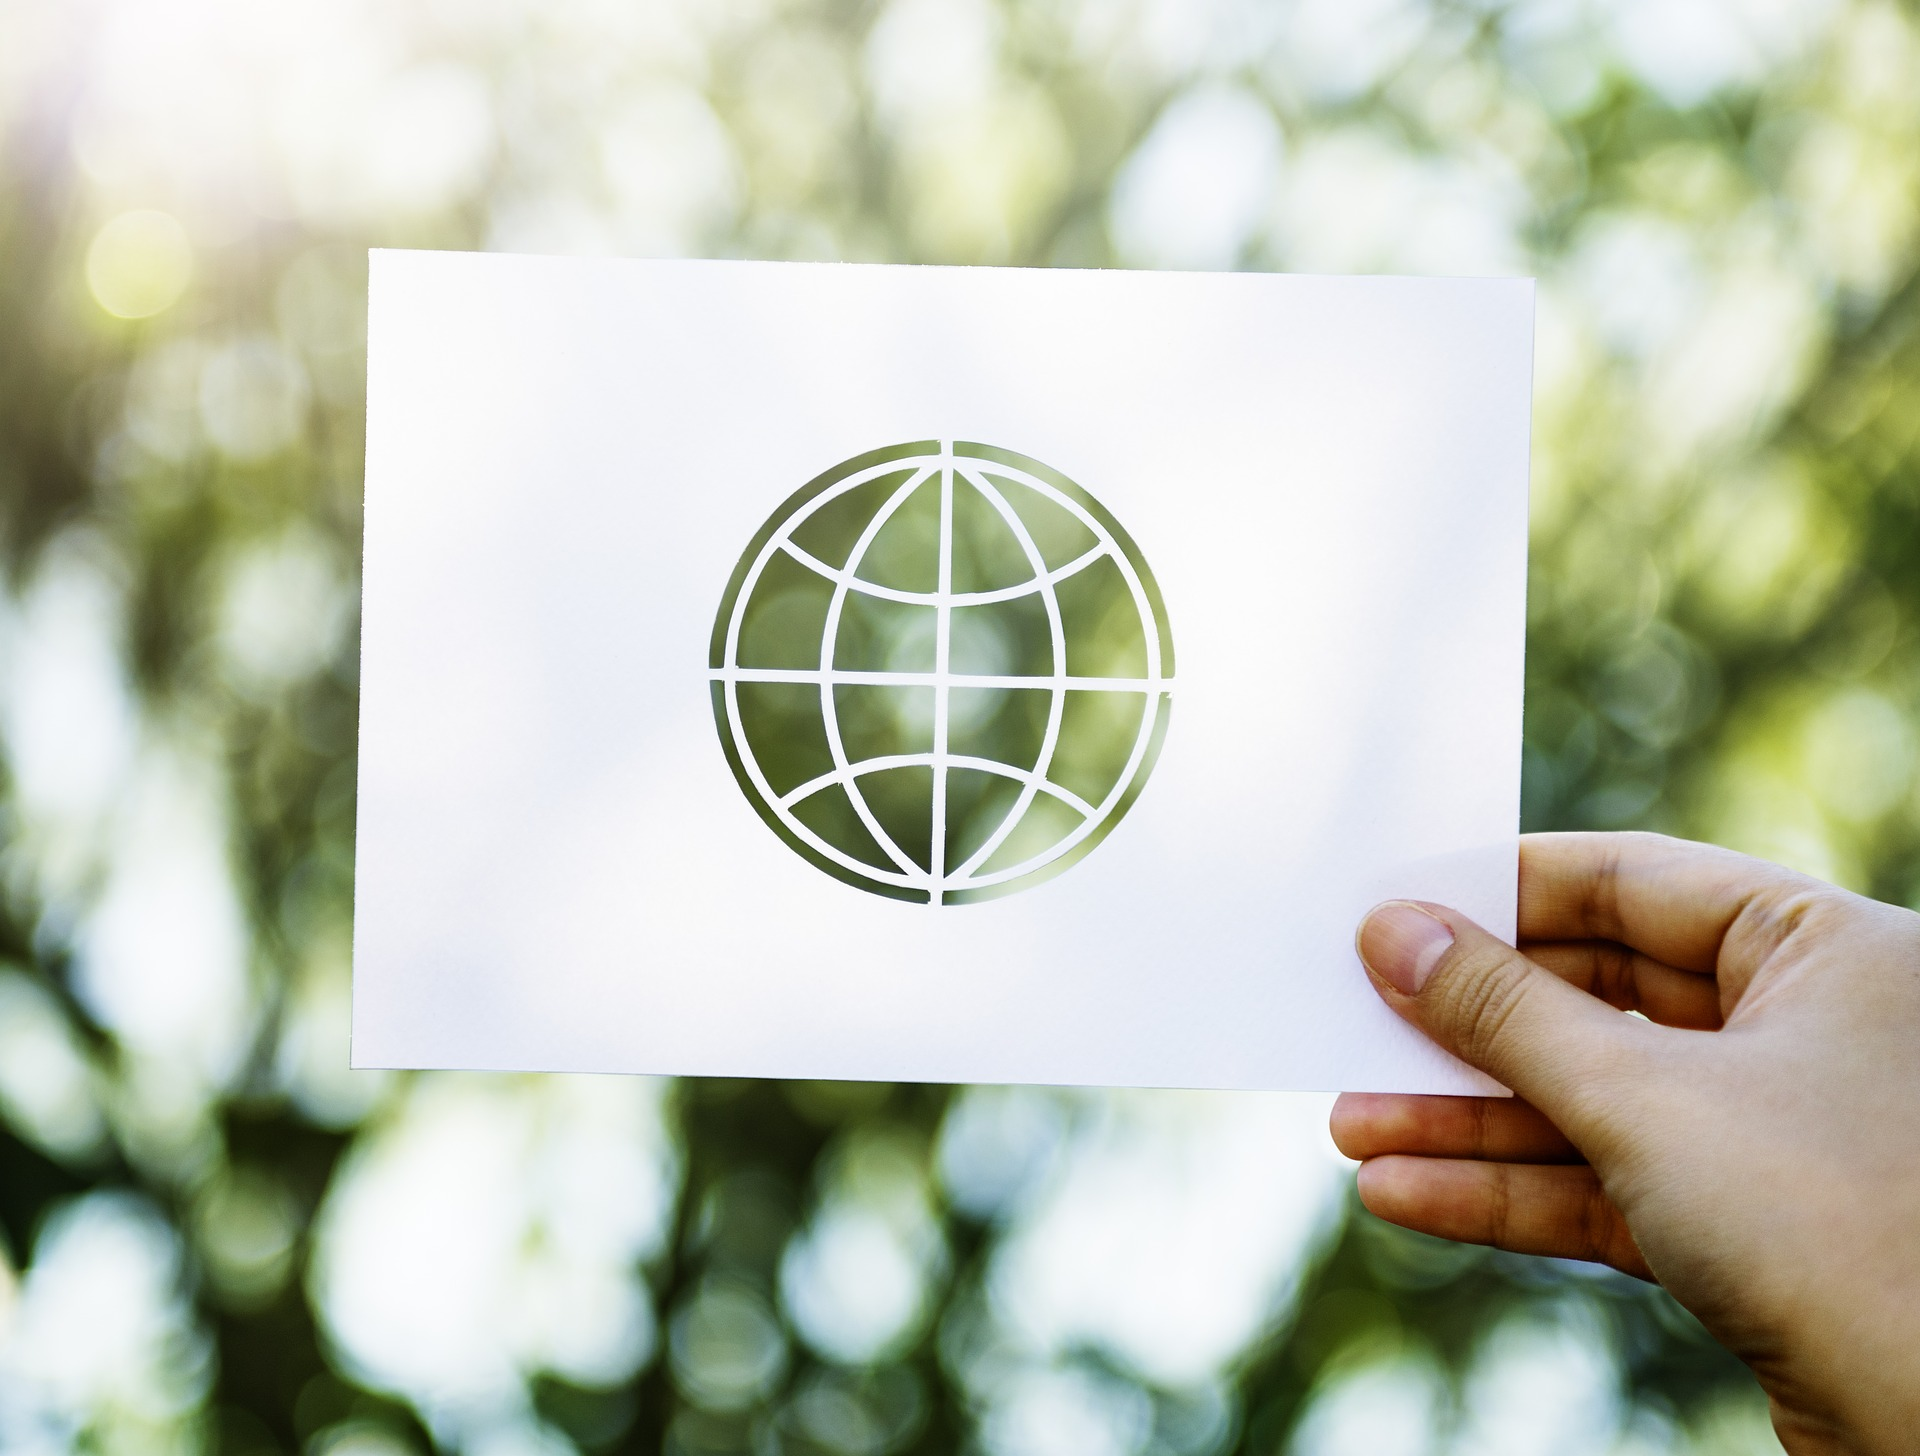 Global Biodiversity Information Facility 2019 Ebbe Nielsen Challenge Open for Applications